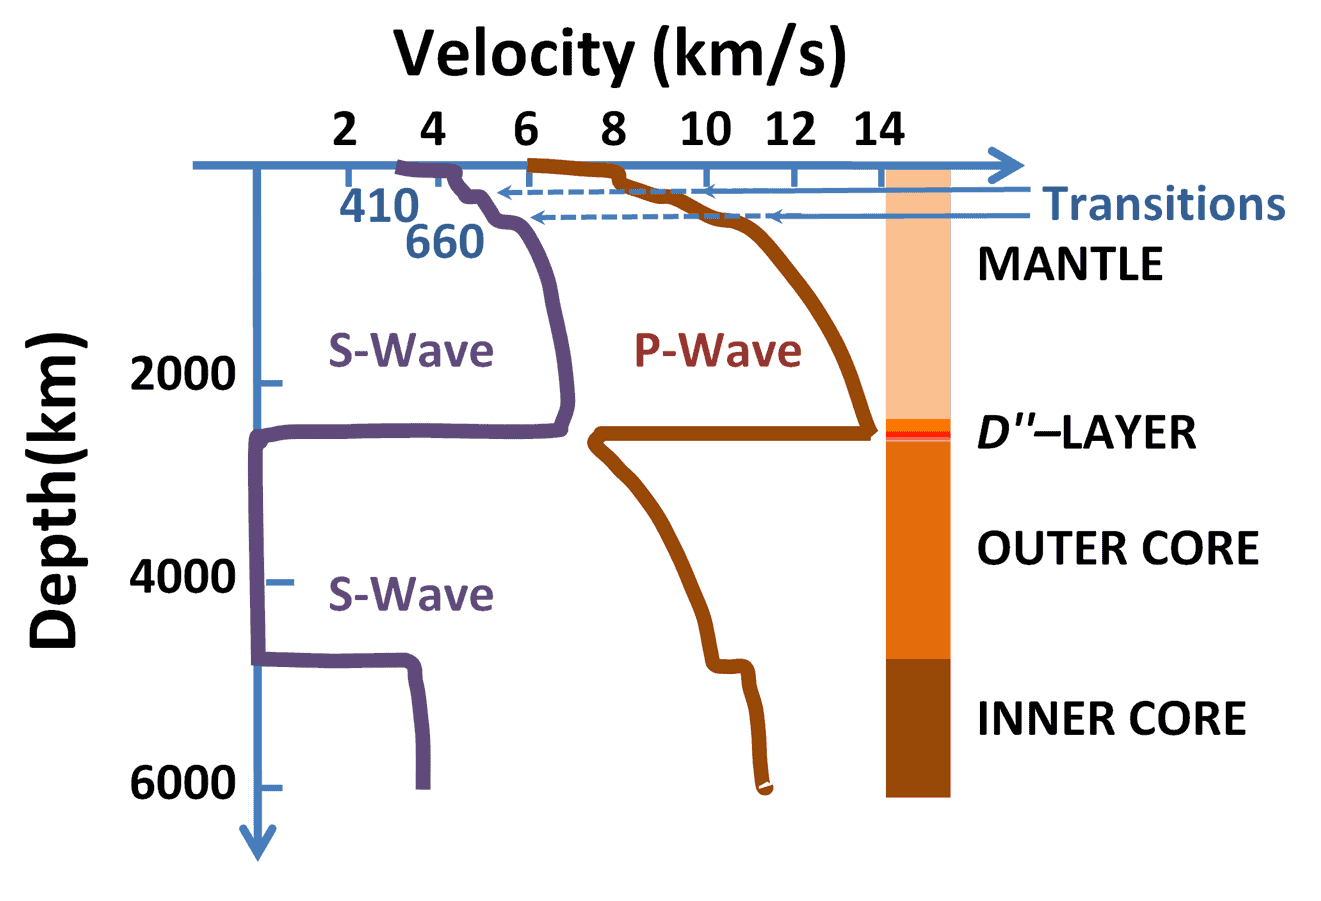 hight resolution of furthermore modern simulations in the lab showed how minerals likely behave at those temperatures and pressures and we also have indirect gravitational